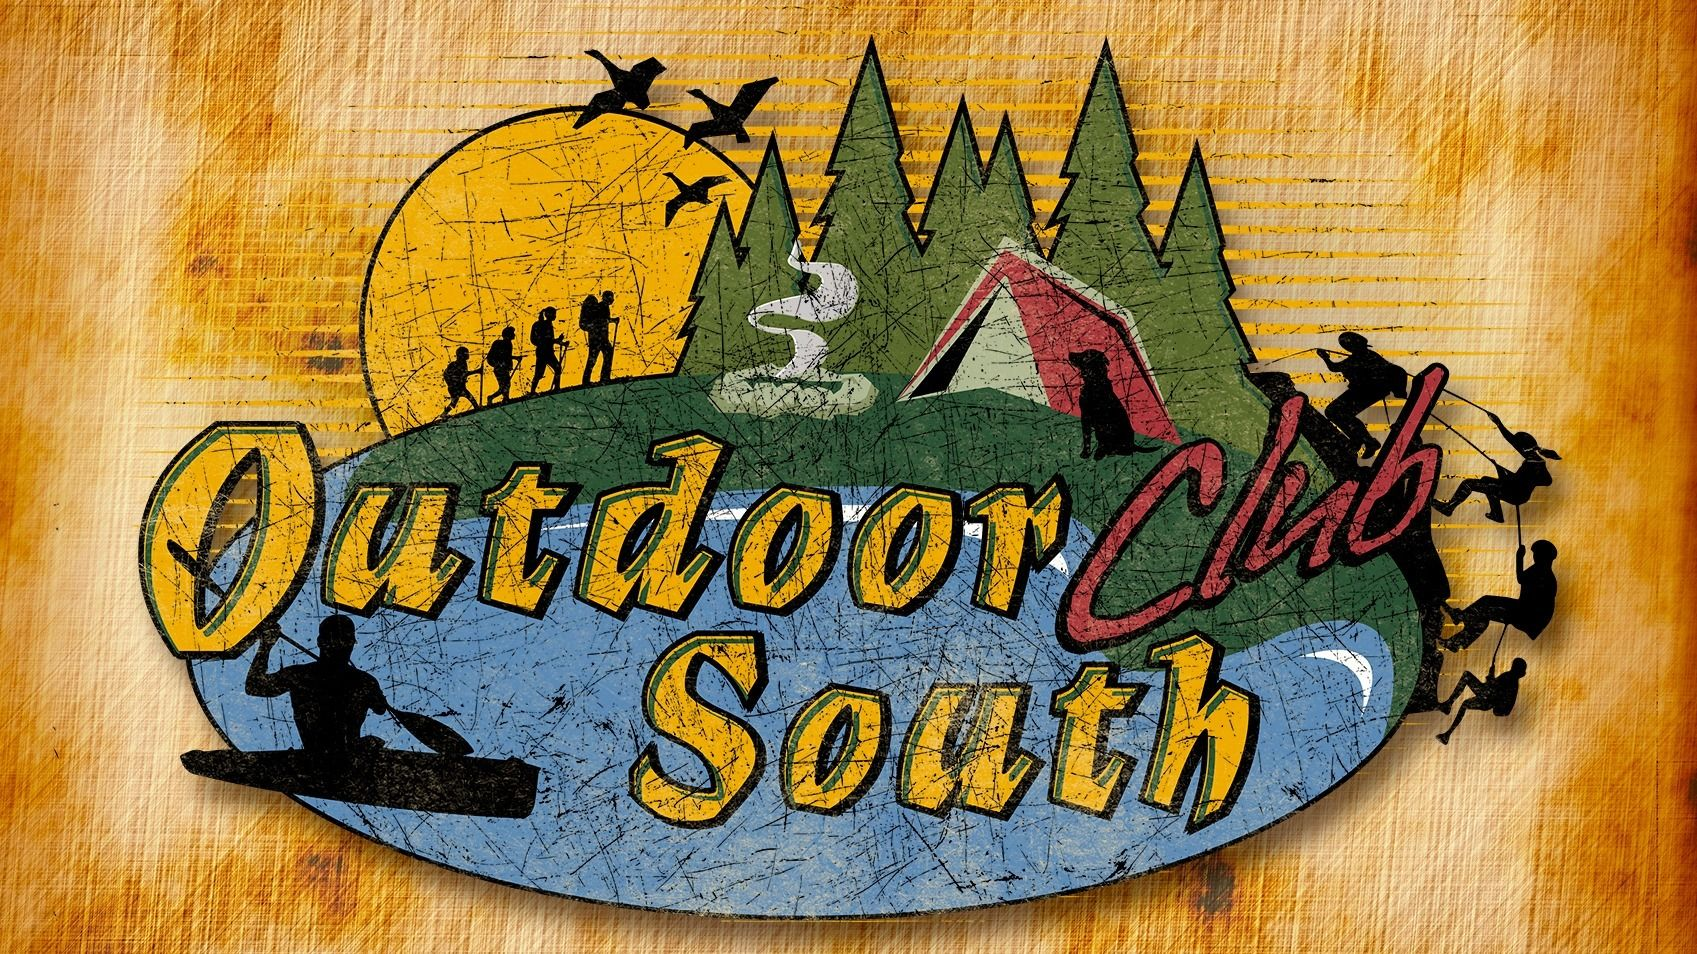 - Outdoor Club South -